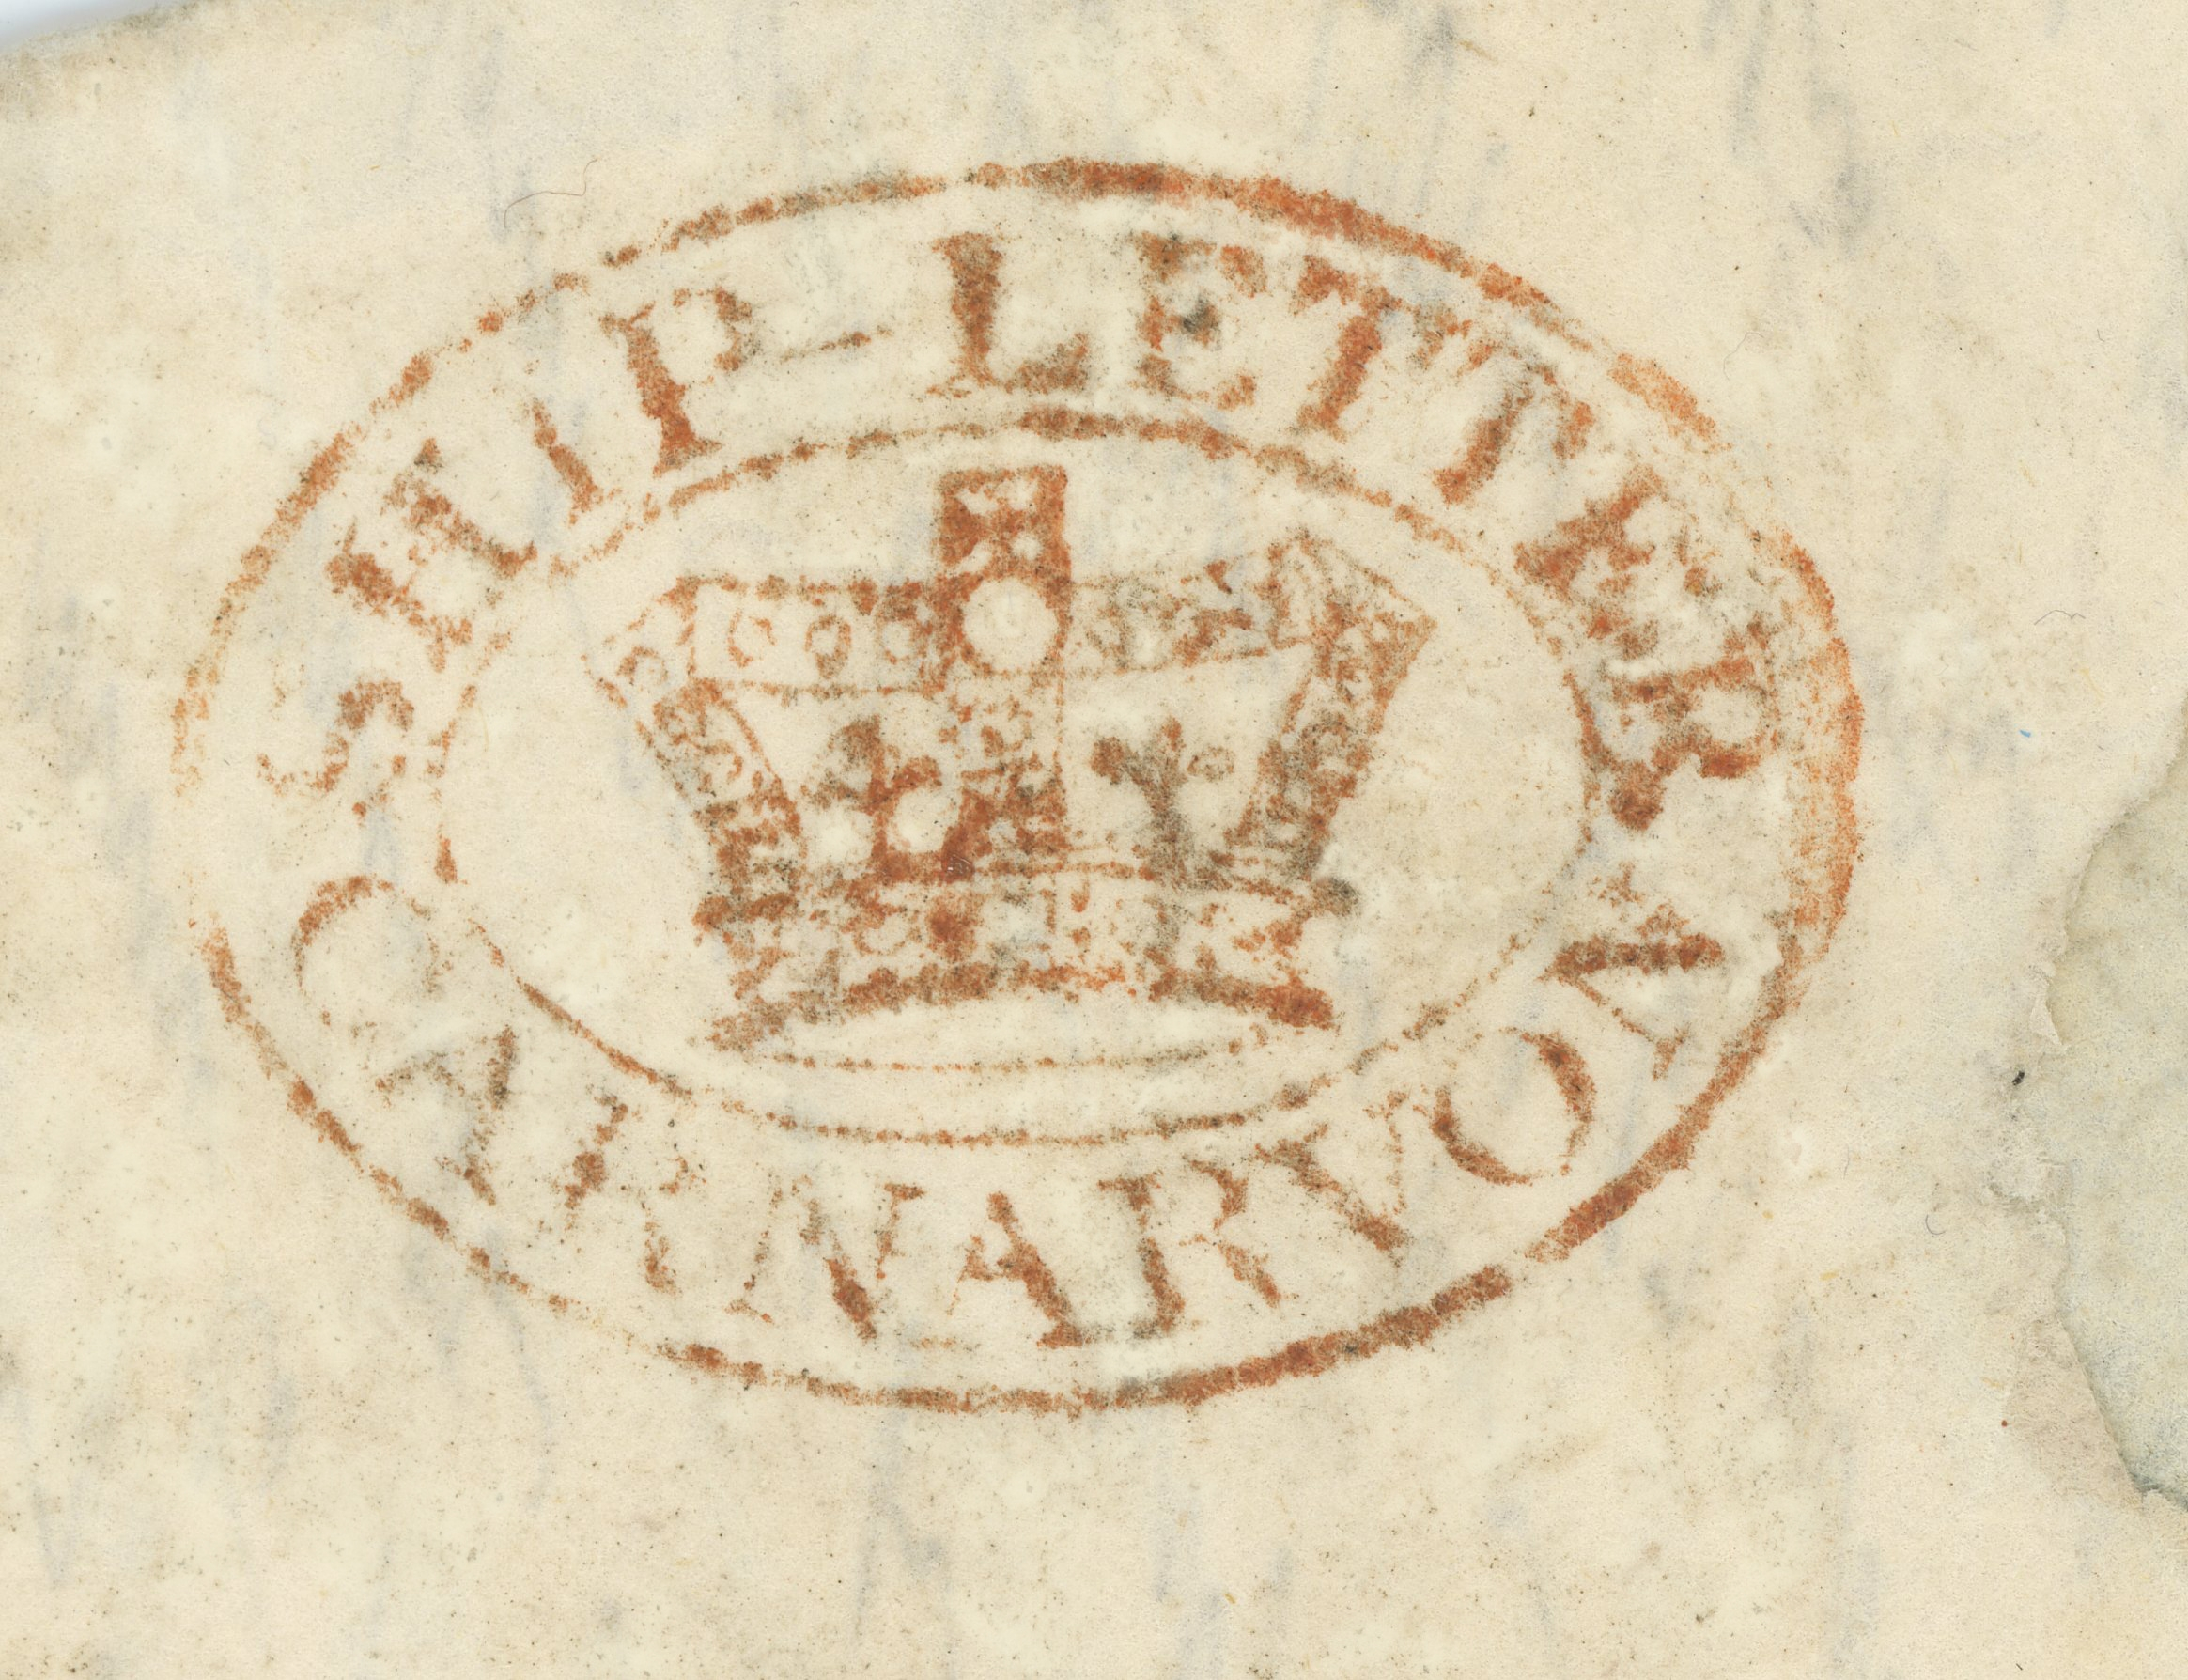 Carnarvon Ship-letter (crowned) - Robertson E.30/B S2.  Only two examples have been recorded, from the same provenance - letters from St John, New Brunswick- by private ship to Pwllheli. The 1823 letter to London recorded by Robertson carries a very indistinct mark in which only the . . . ON of CARNARVON can be distinguished.  The 1824 letter to Edinburgh which bears the above mark, also carries a PULHELY straight-line stamp.